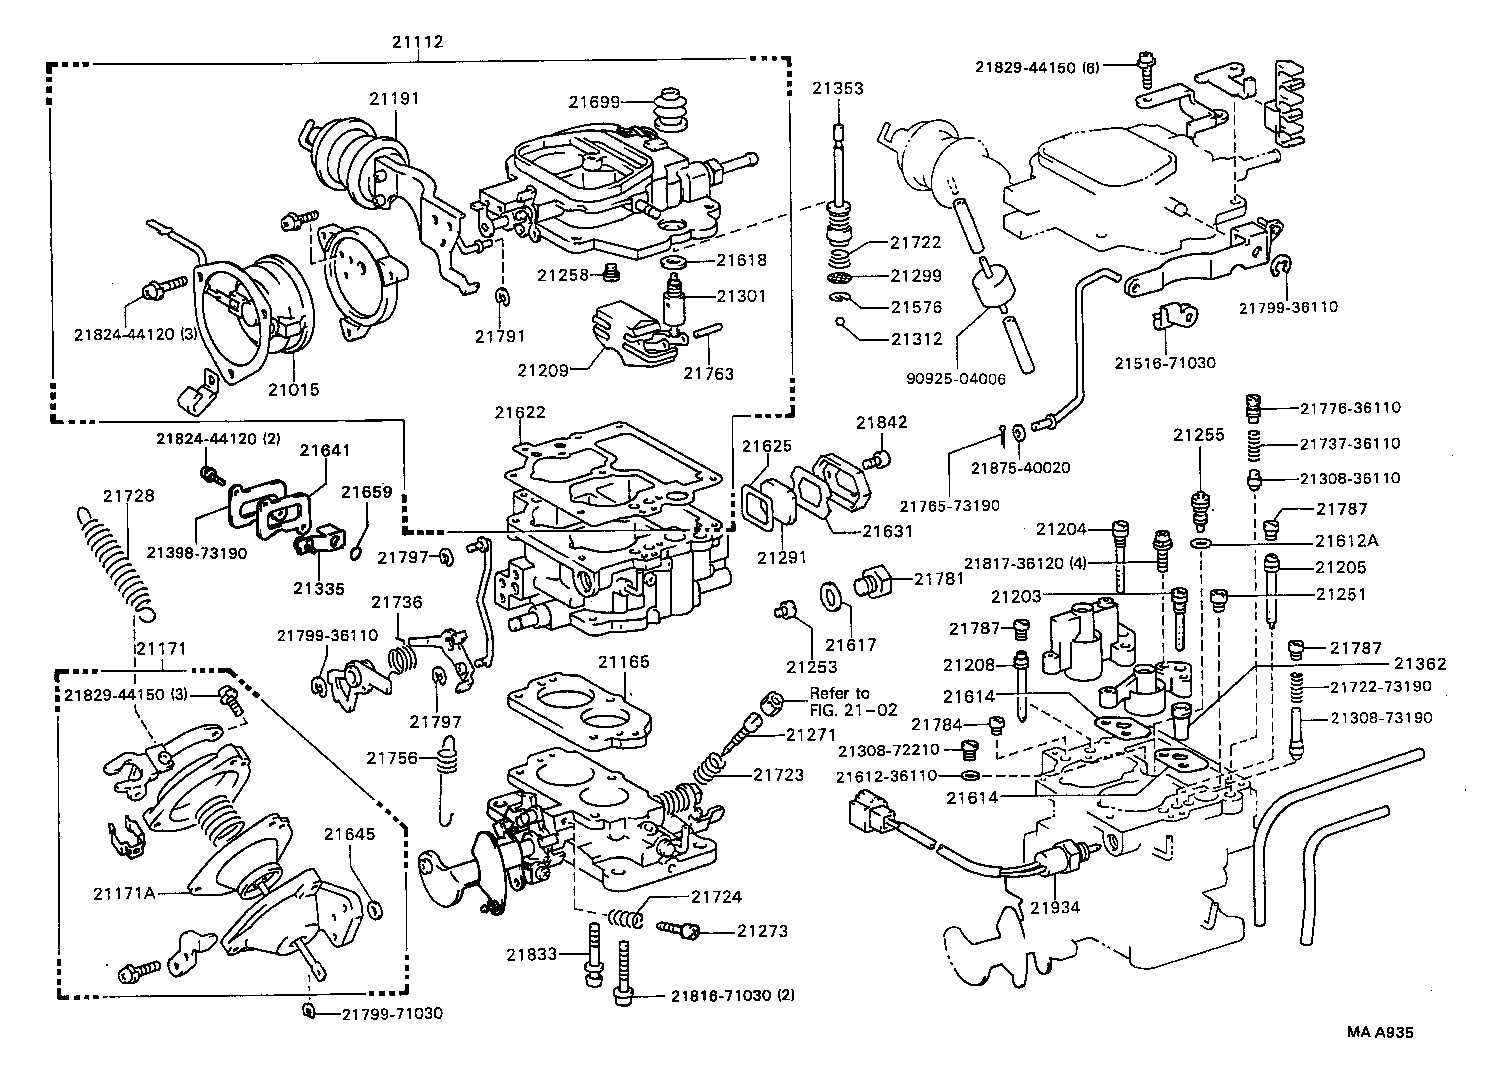 Wiring Diagram Toyota Wish